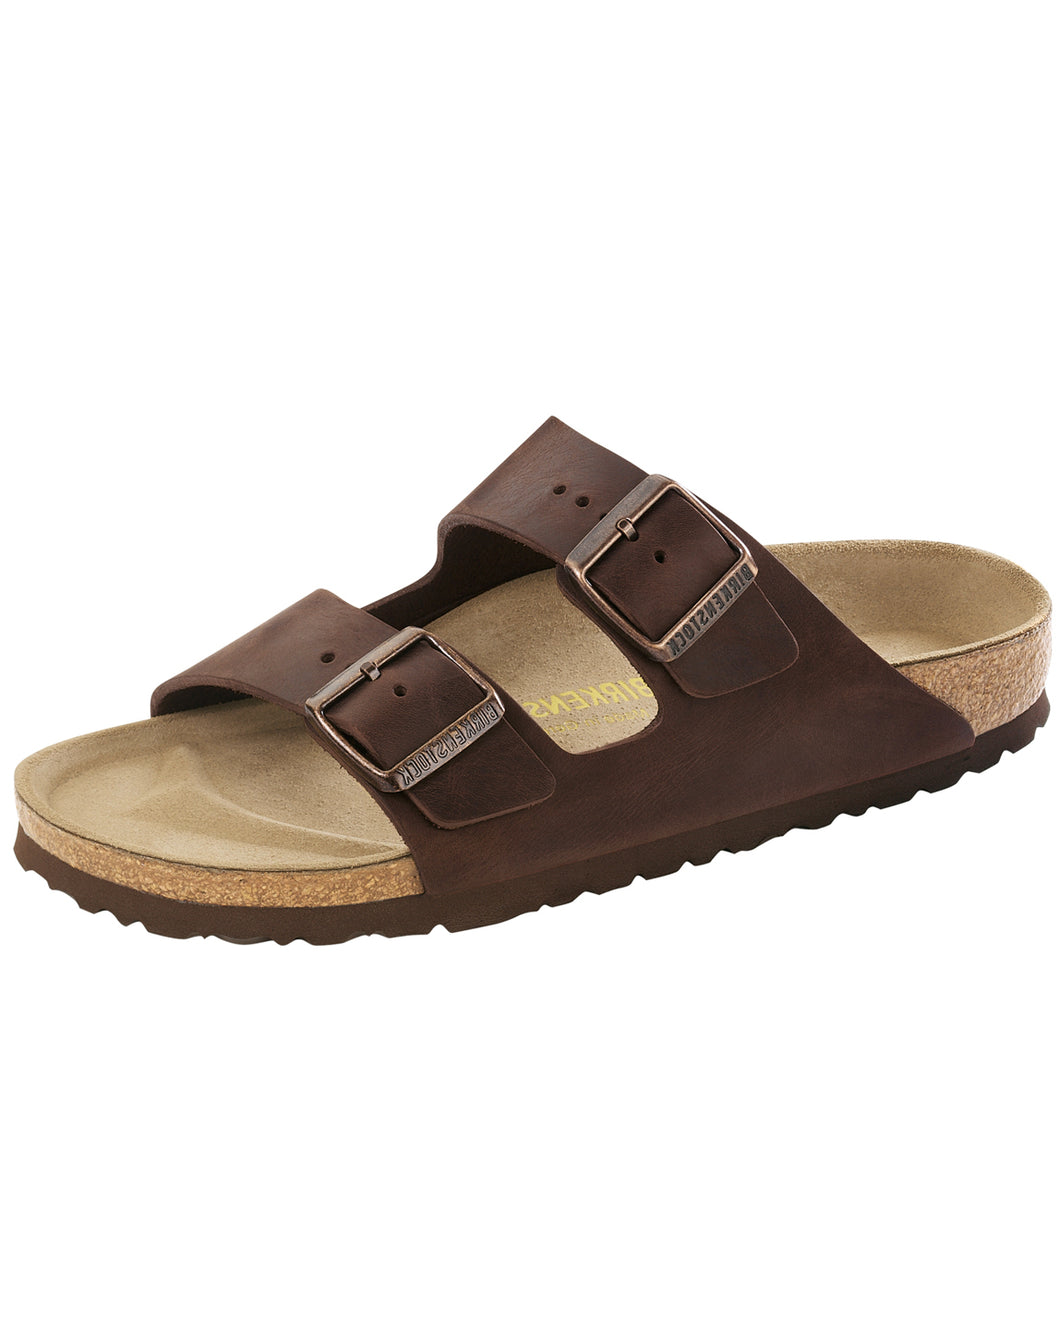 BIRKENSTOCK ARIZONA HABANA OILED LEATHER SANDAL NARROW